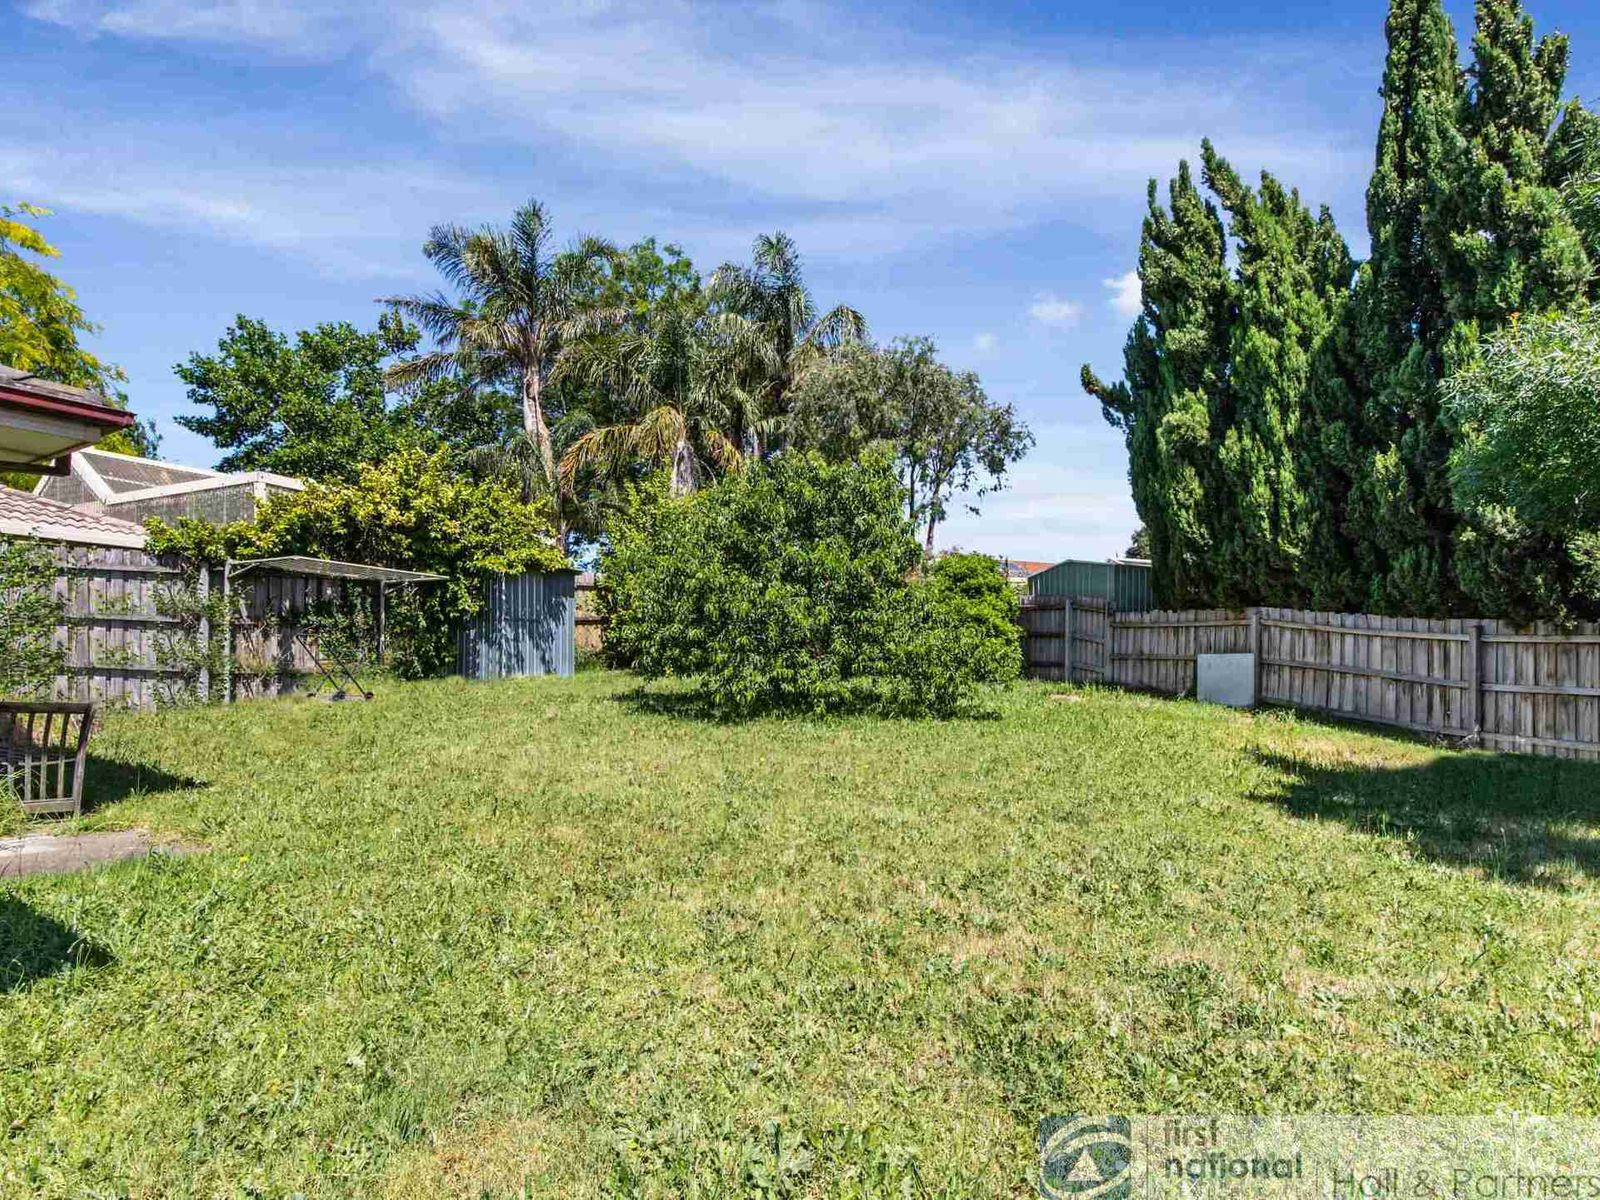 17 Acre Rise, Hampton Park, VIC 3976